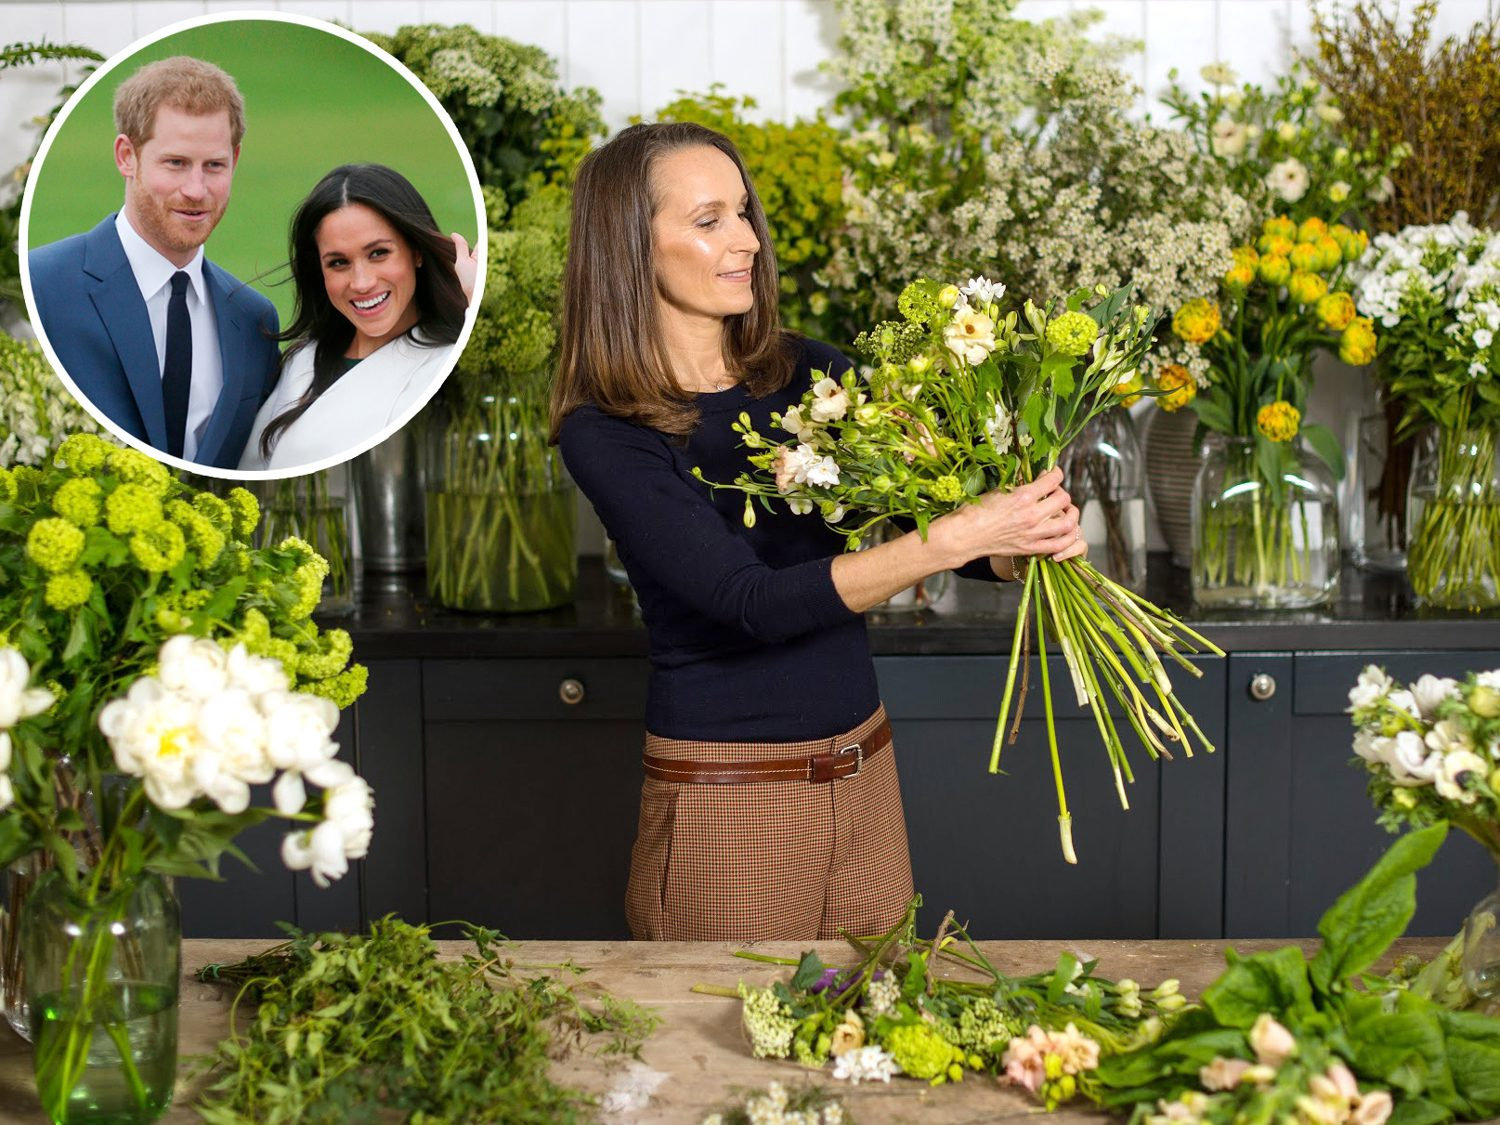 Meghan Markle And Prince Harry Break Tradition With Wedding Florist